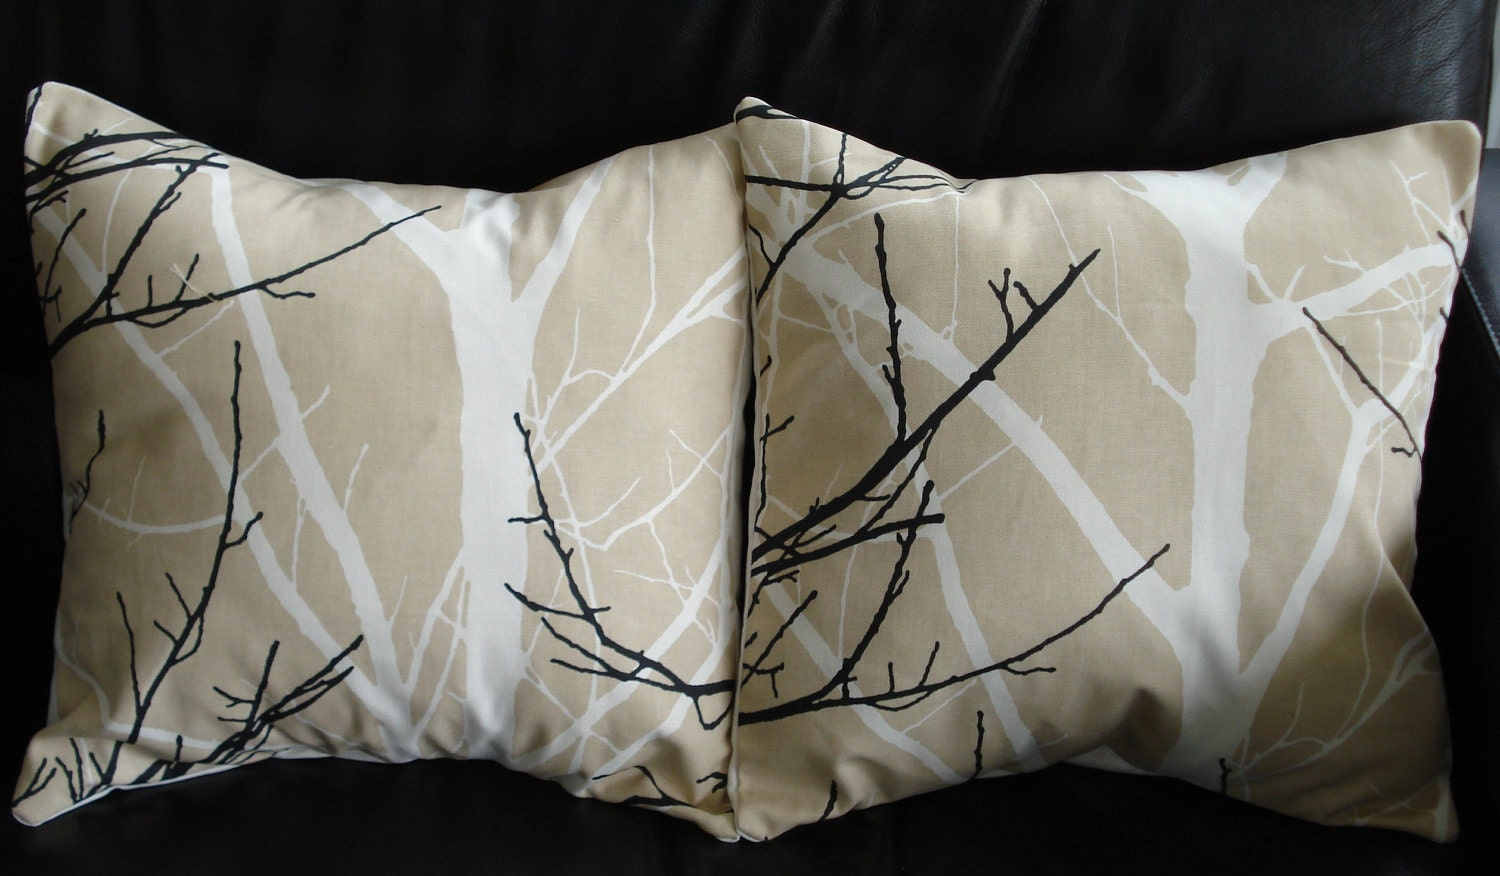 Black White Tan Throw Pillows : Throw Pillows White black Tree Print Design on beige by VeeDubz